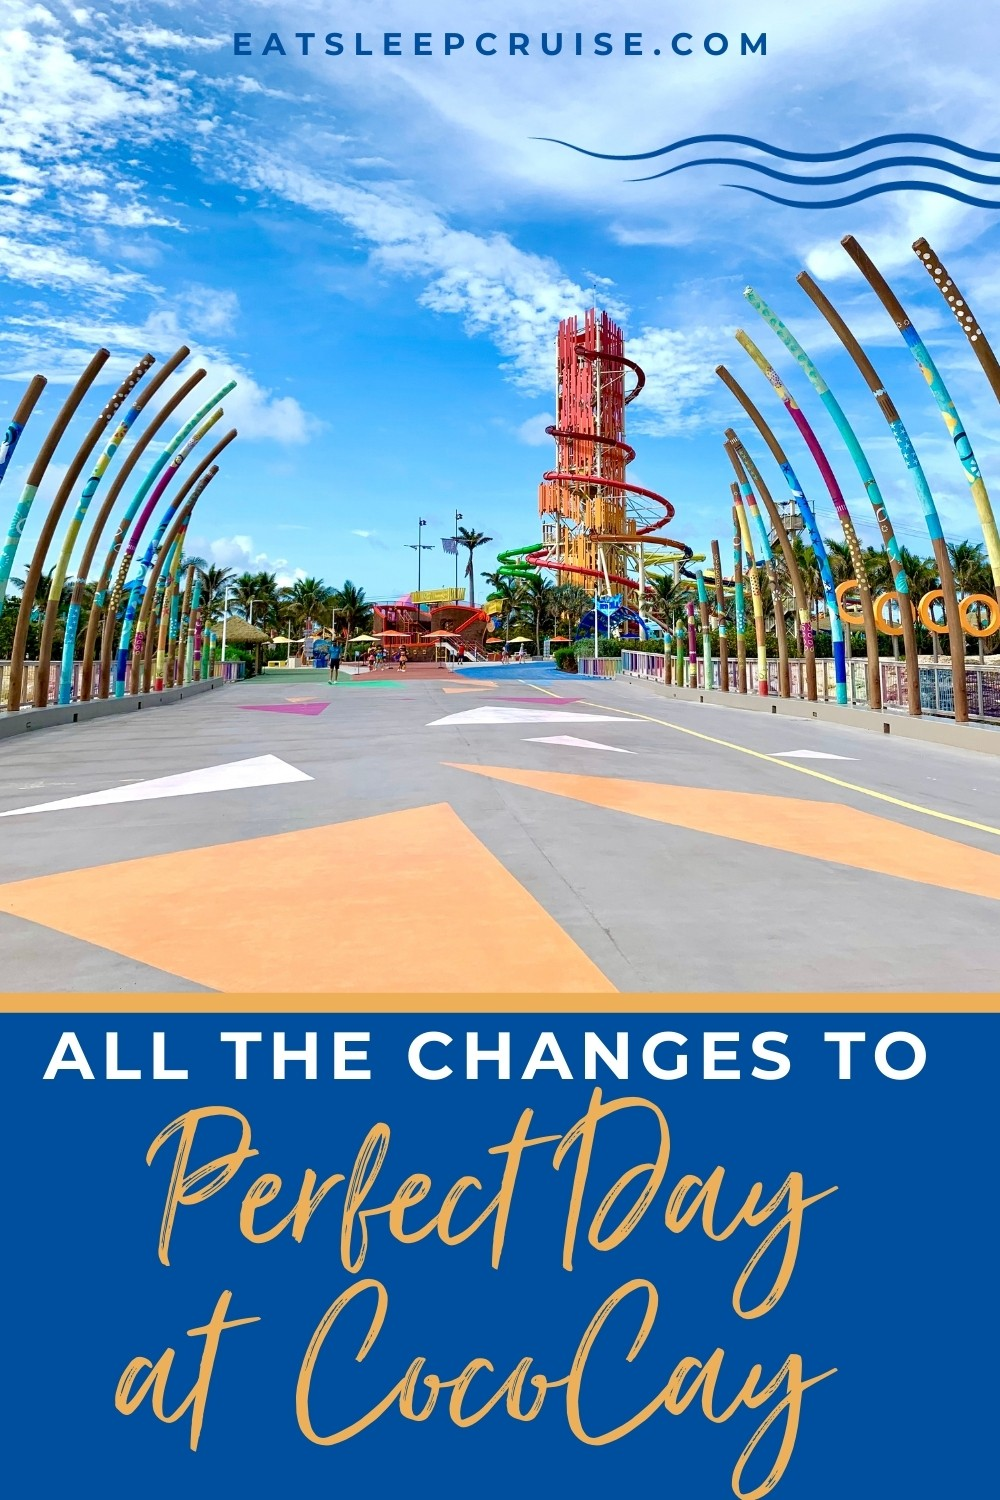 Find out what is different at Perfect Day at CocoCay with this latest update from the first Royal Caribbean cruise of 2021 in North America!